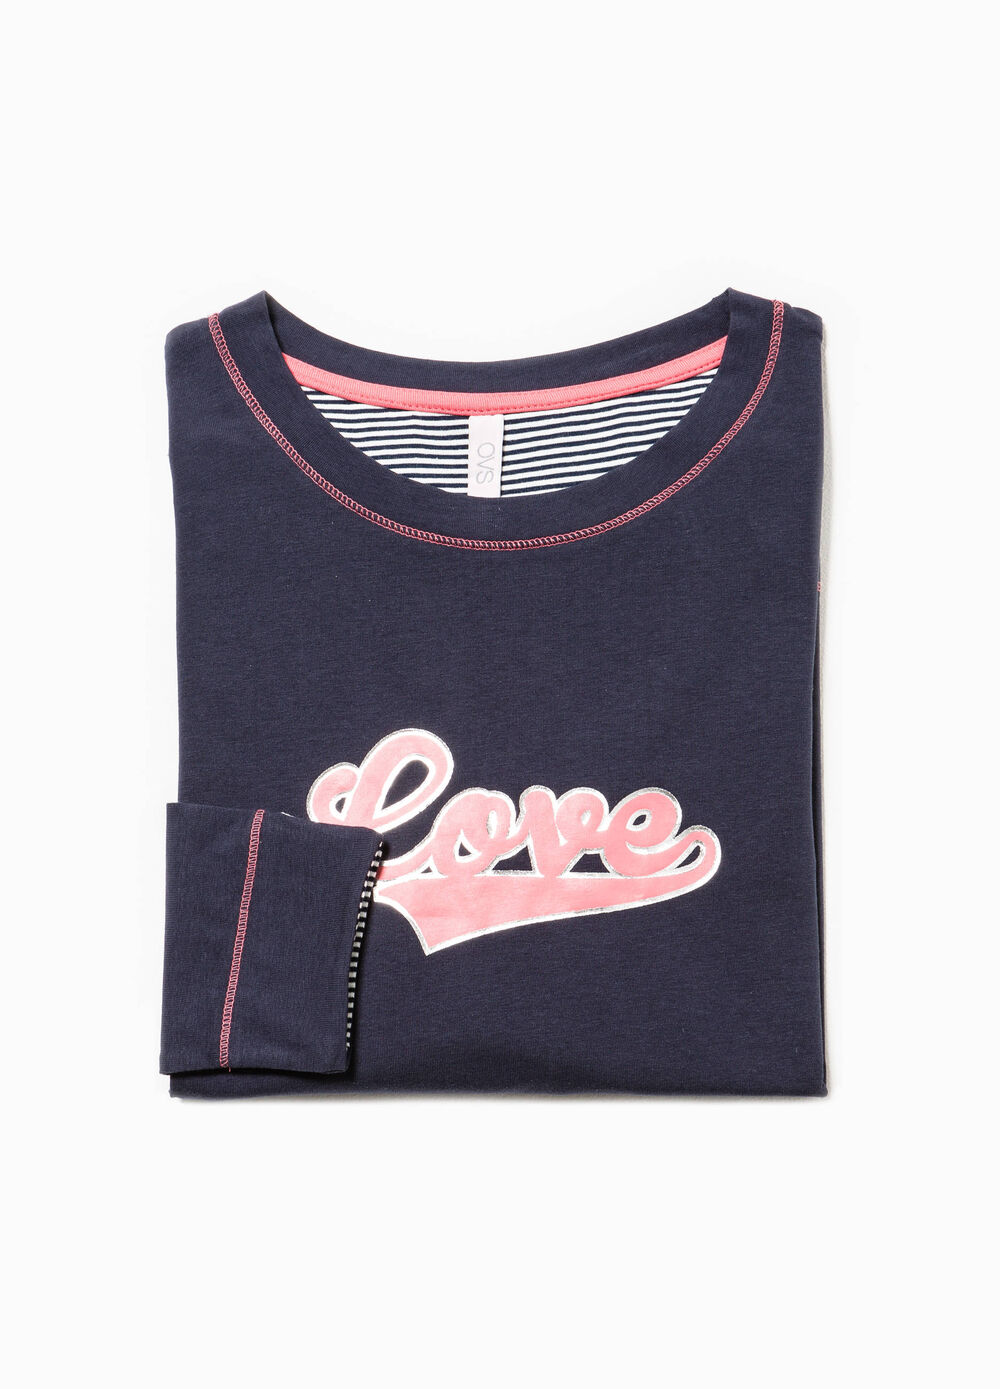 Pyjama top with printed lettering